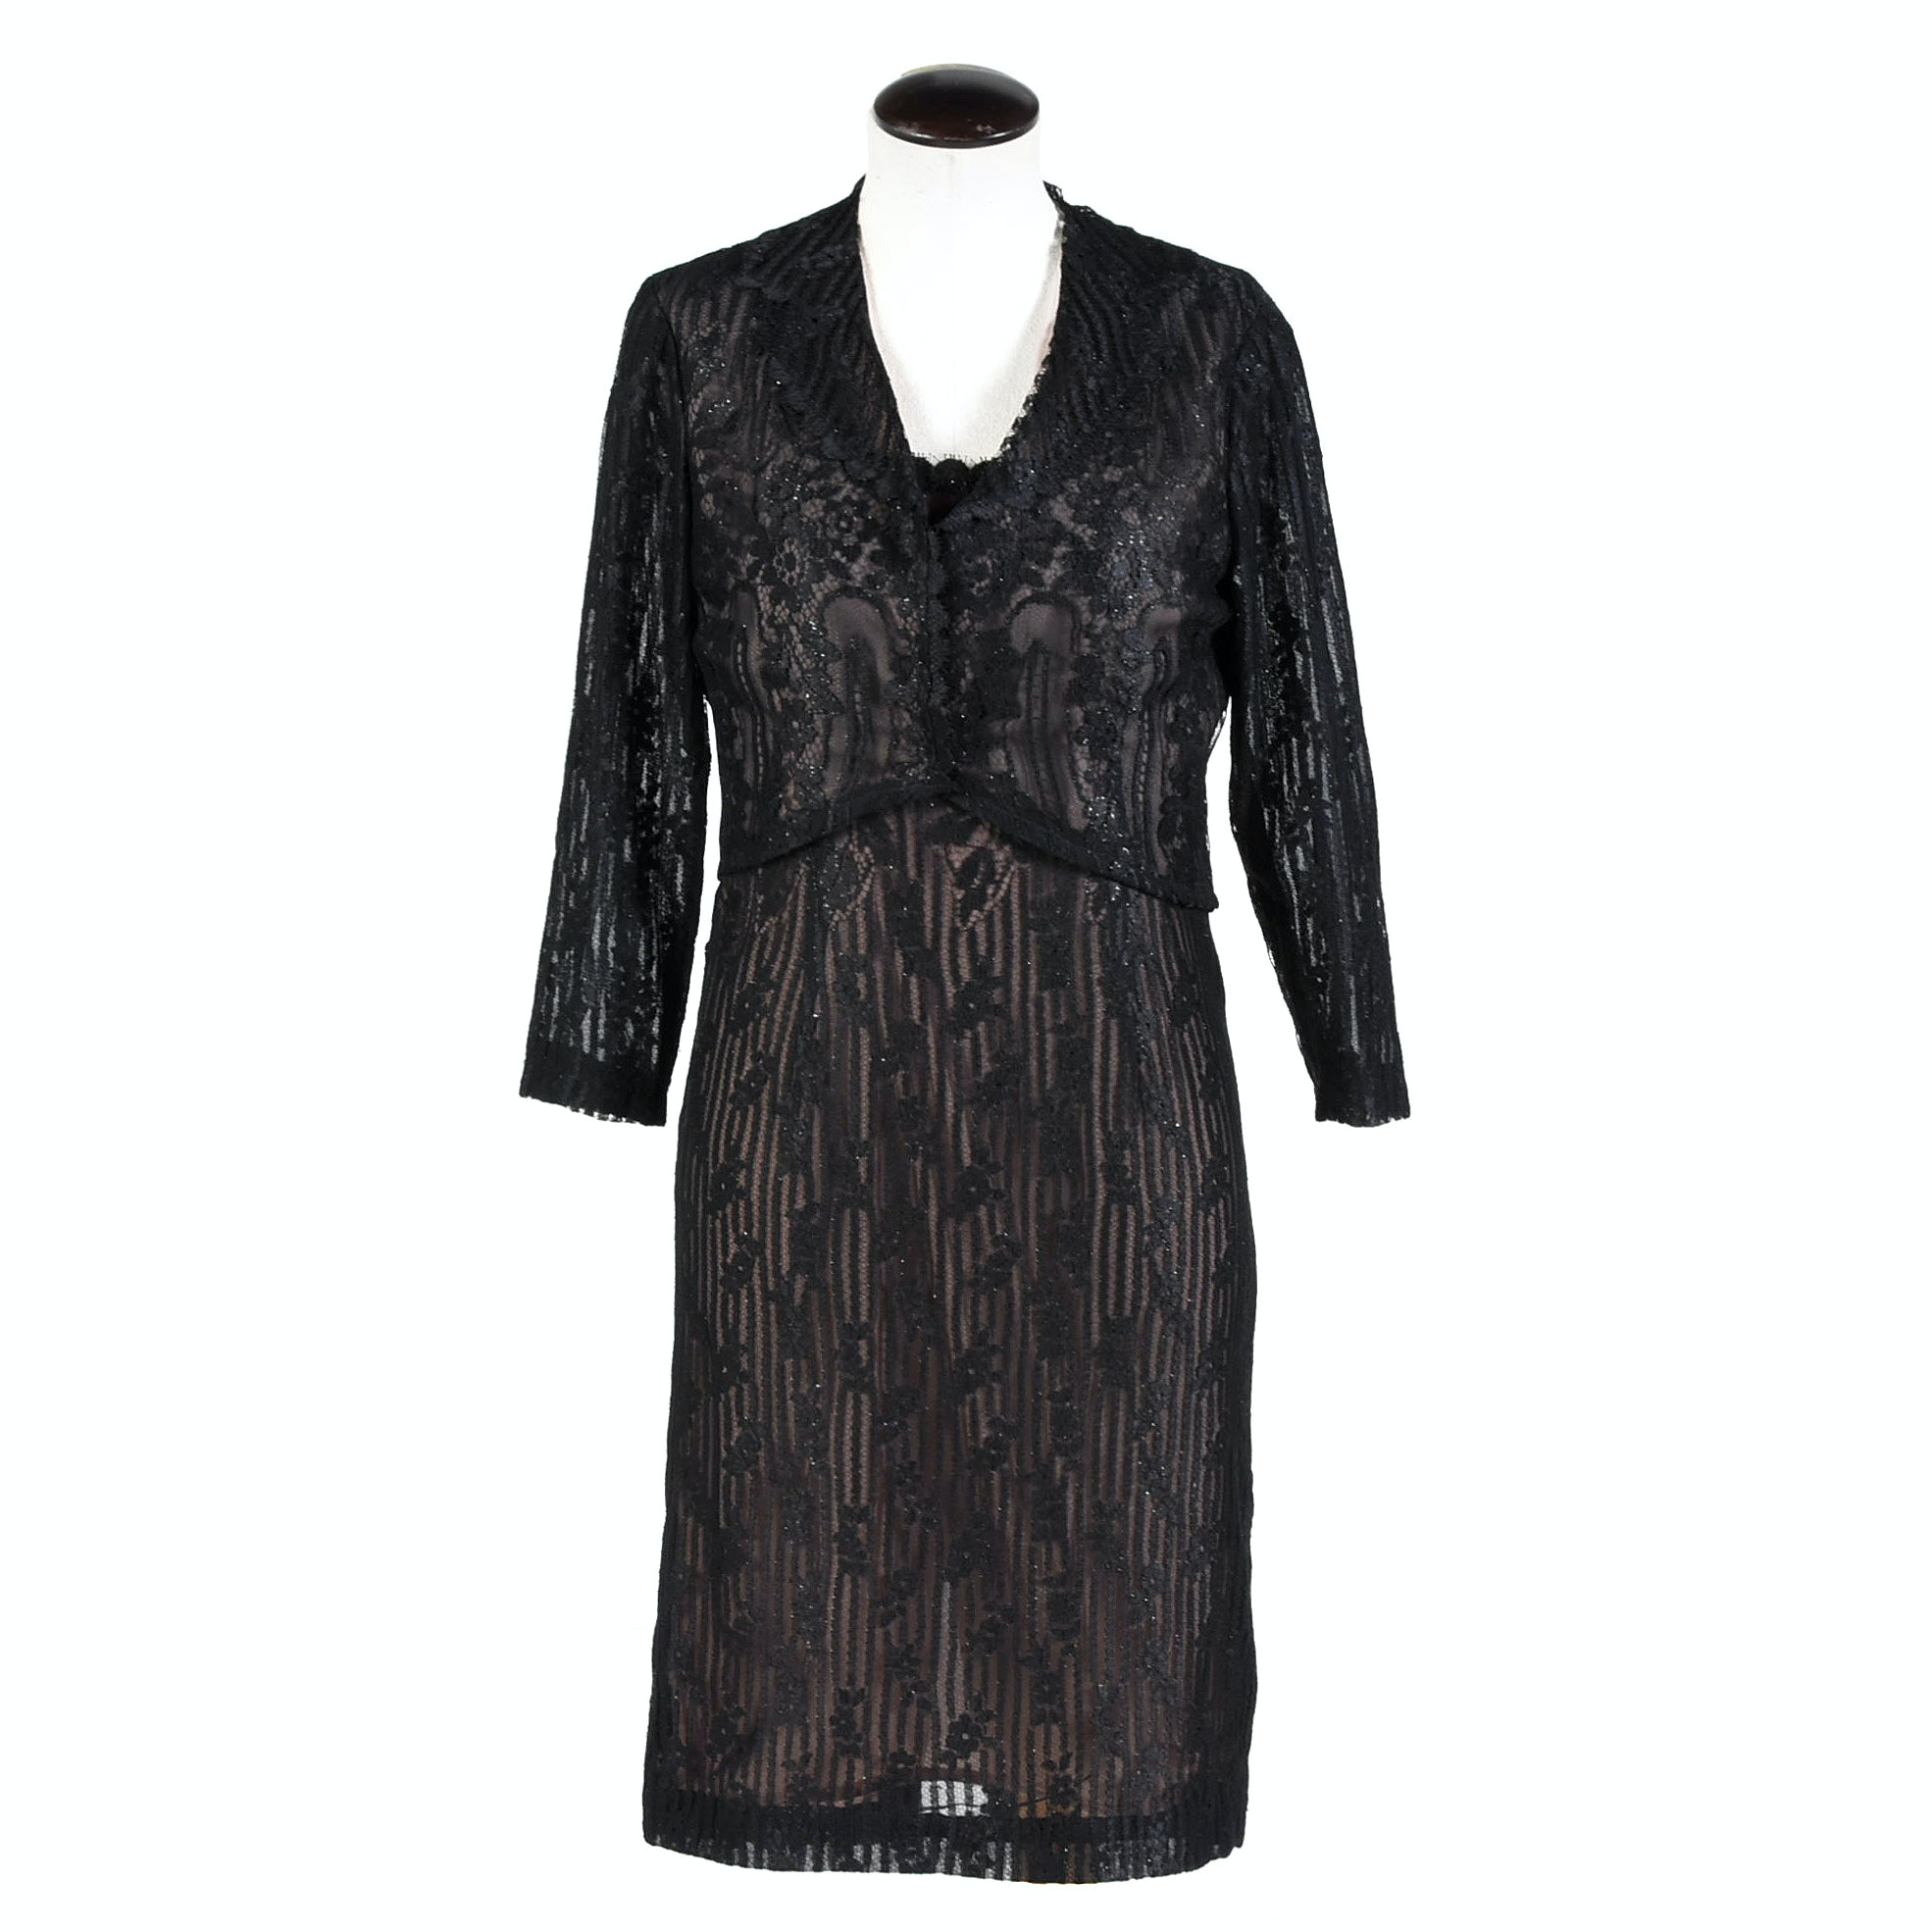 Worth Black Lace Sleeveless Cocktail Dress with Jacket